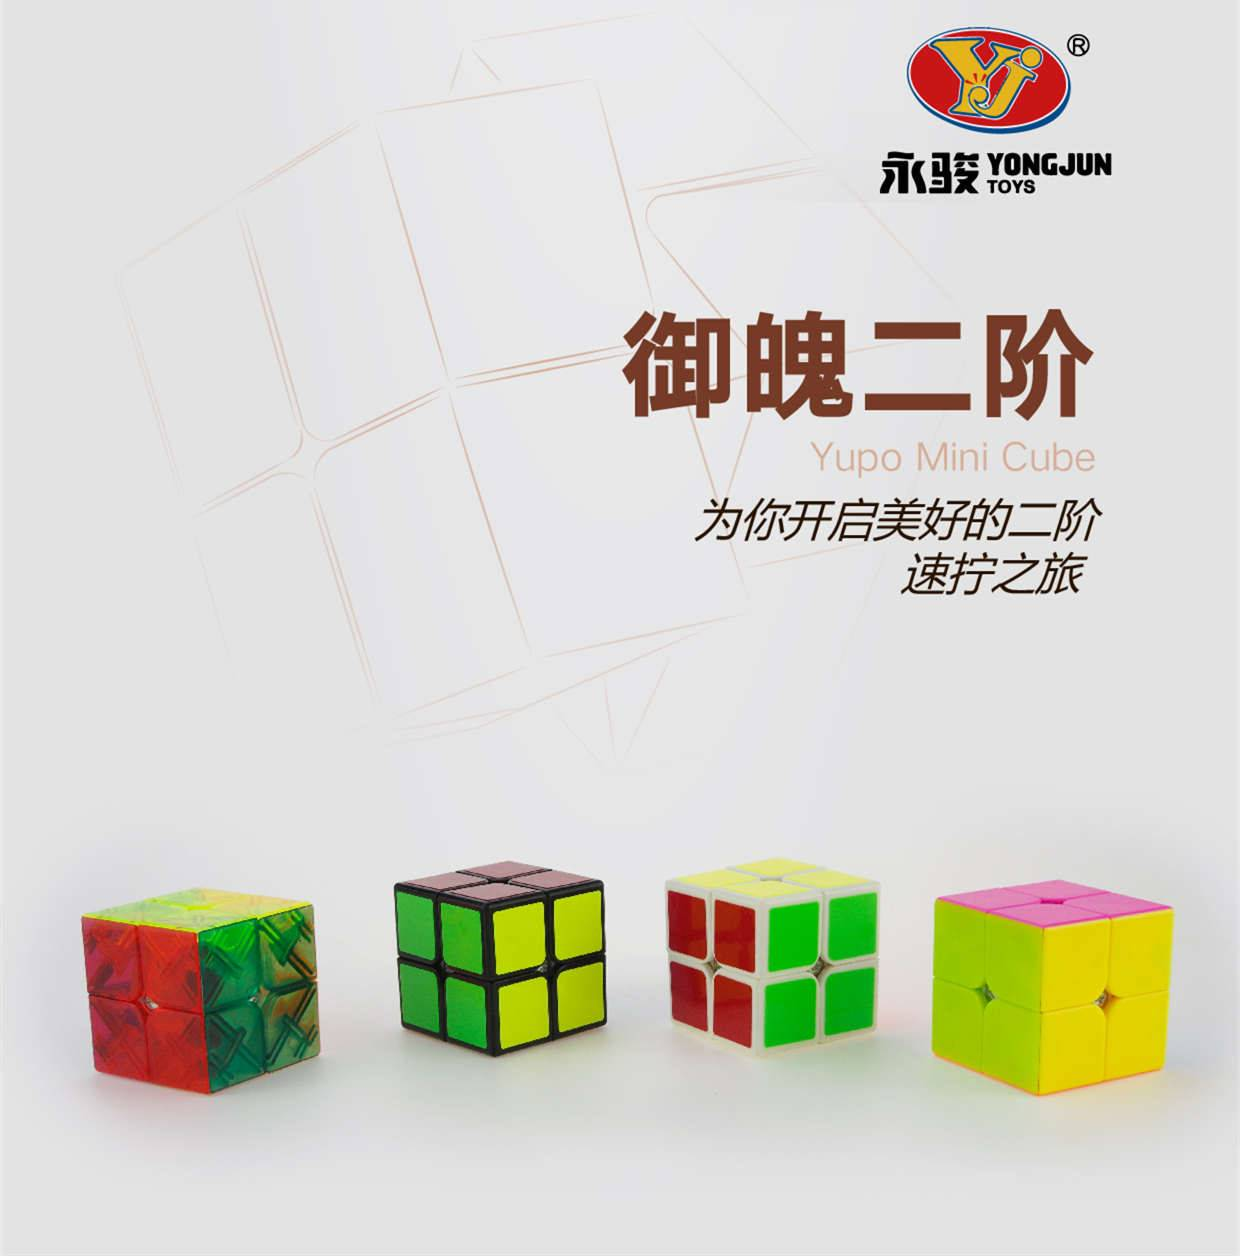 Yongjun YJ Yupo 2×2 Cube Magic Toys Puzzles